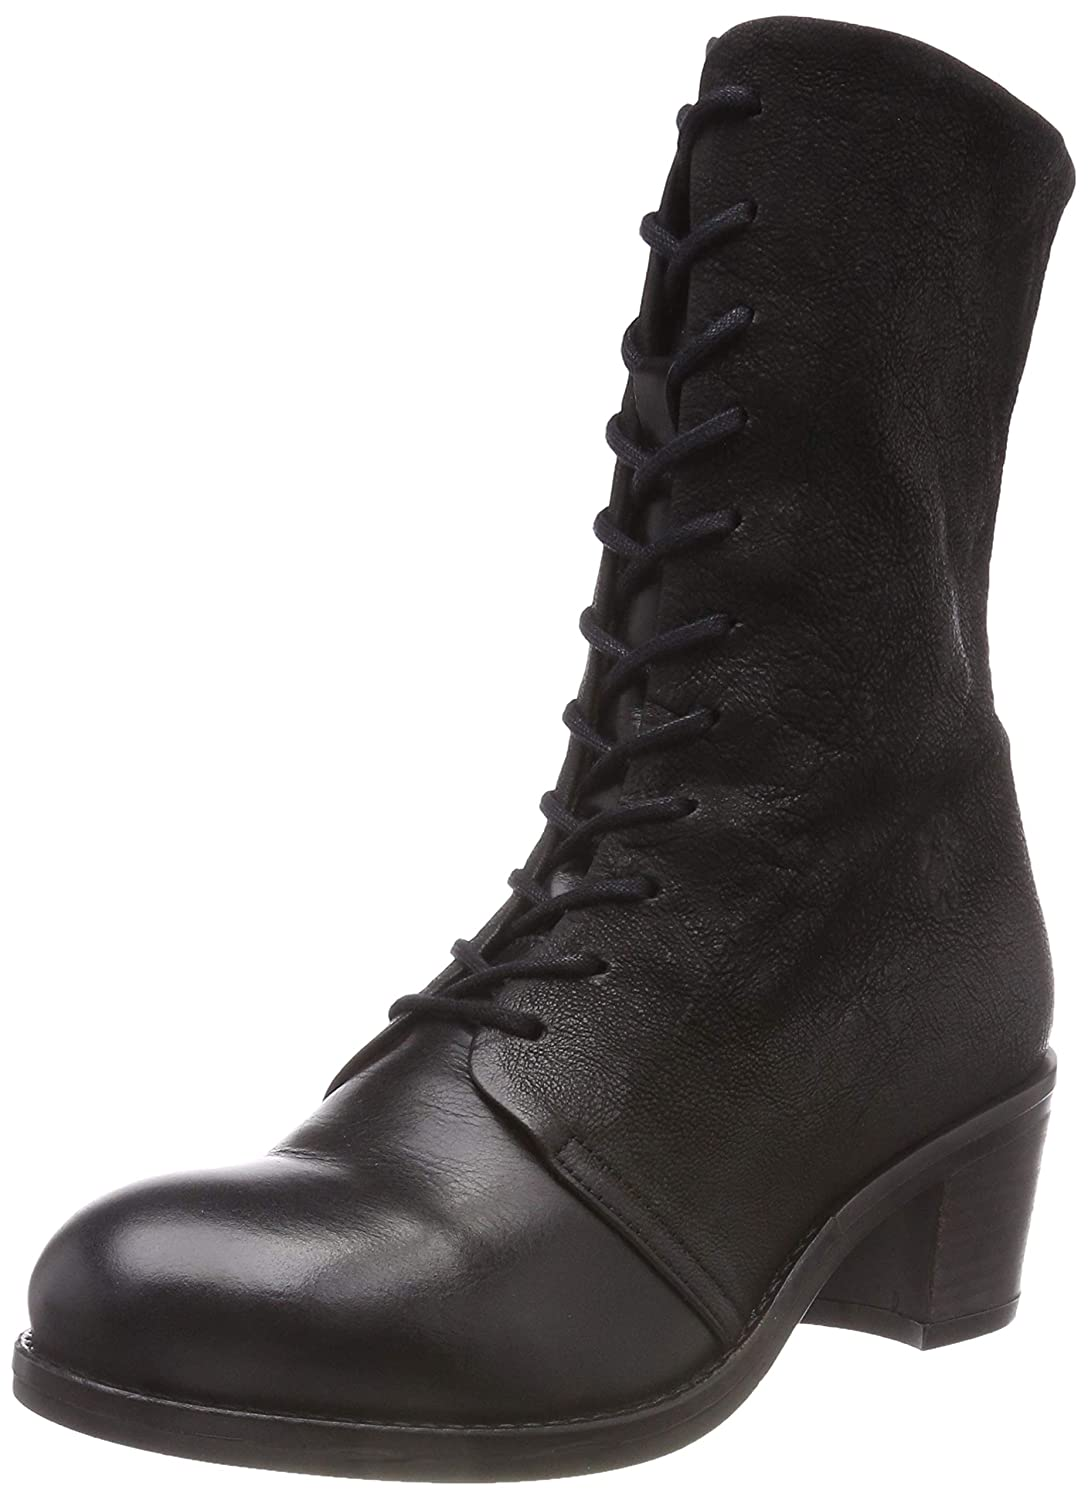 Fly London Zeko324fly, Bottes Classiques Femme Noir (Black/Black (Black/Black Femme London 000) 6a73a21 - jessicalock.space